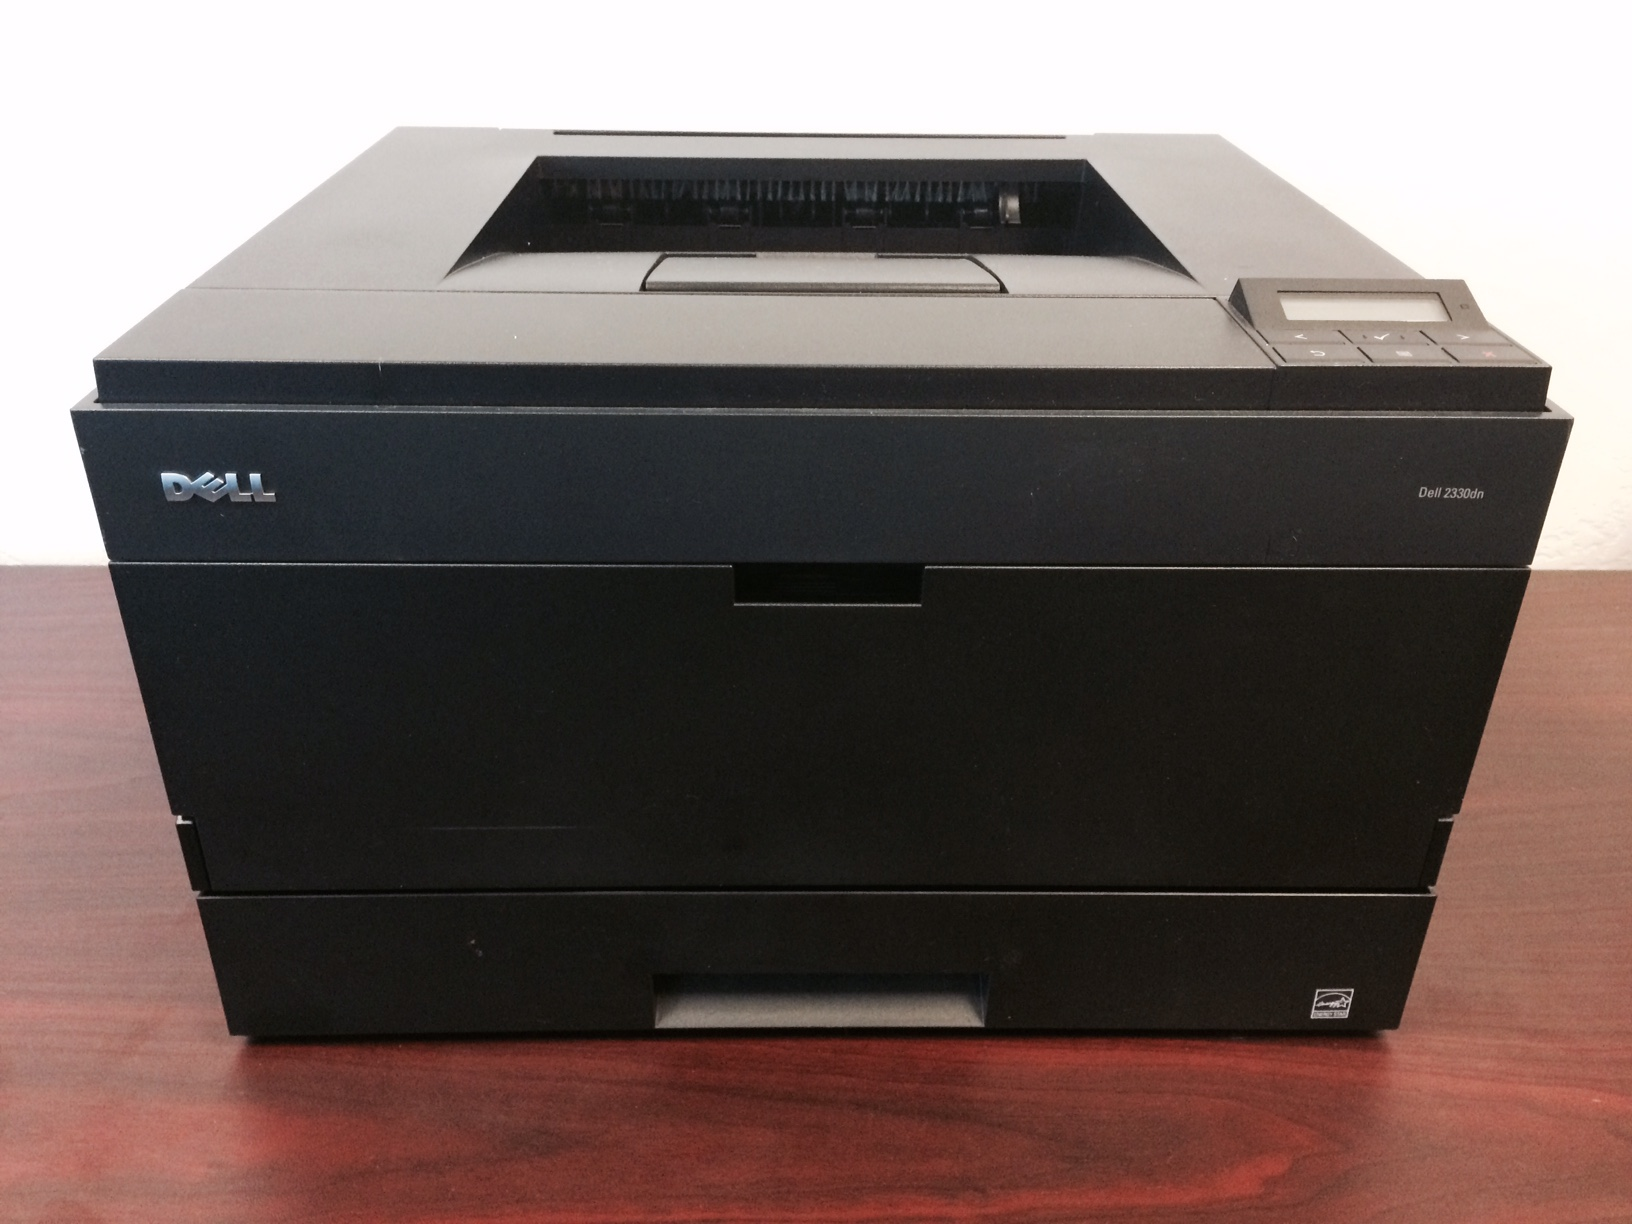 How to reset the imaging drum life counter on your Dell 2330